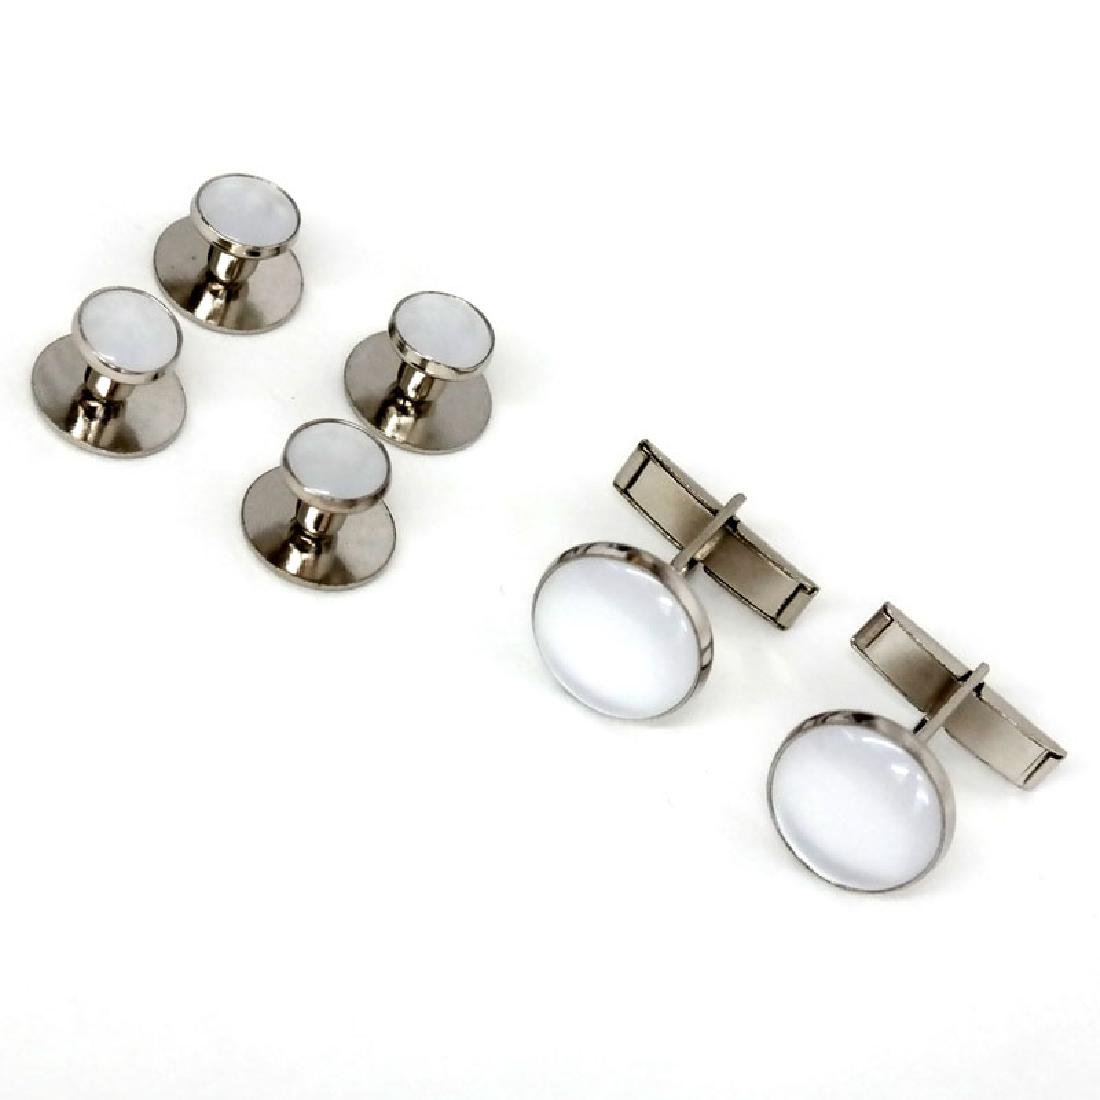 Silver tone SET - pair of cufflinks and 4 buttons with - 4